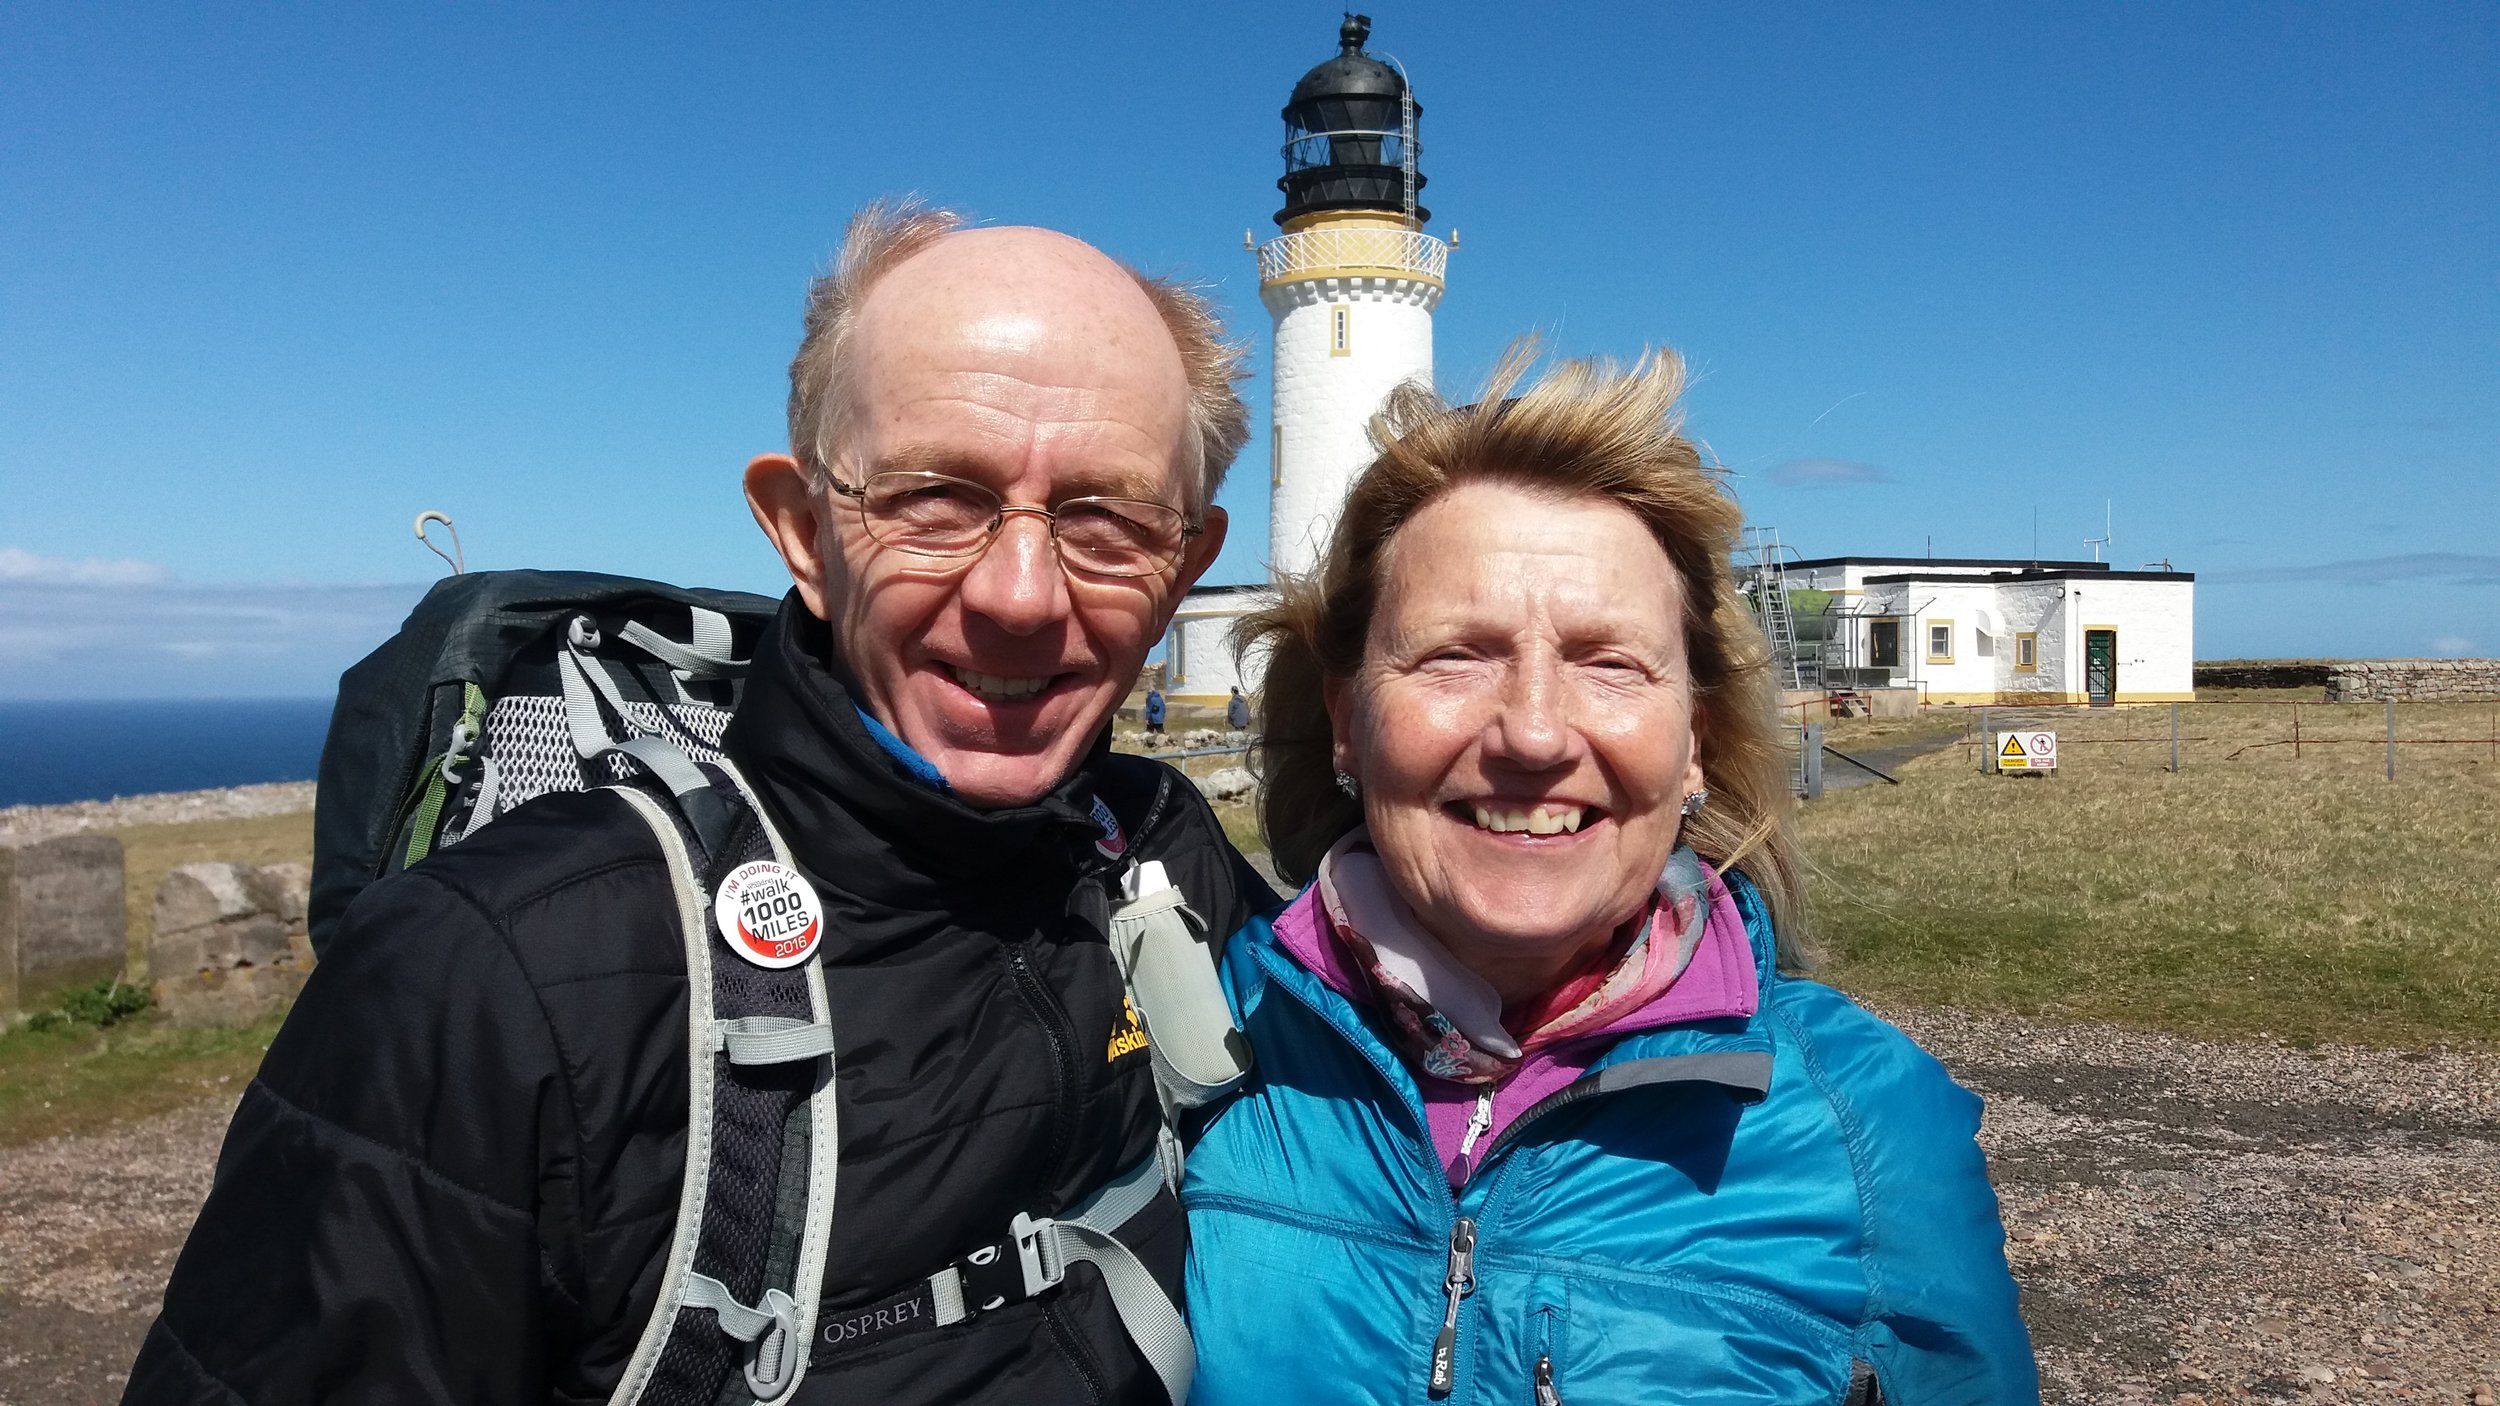 Martin and Maureen at Cape Wrath in Scotland